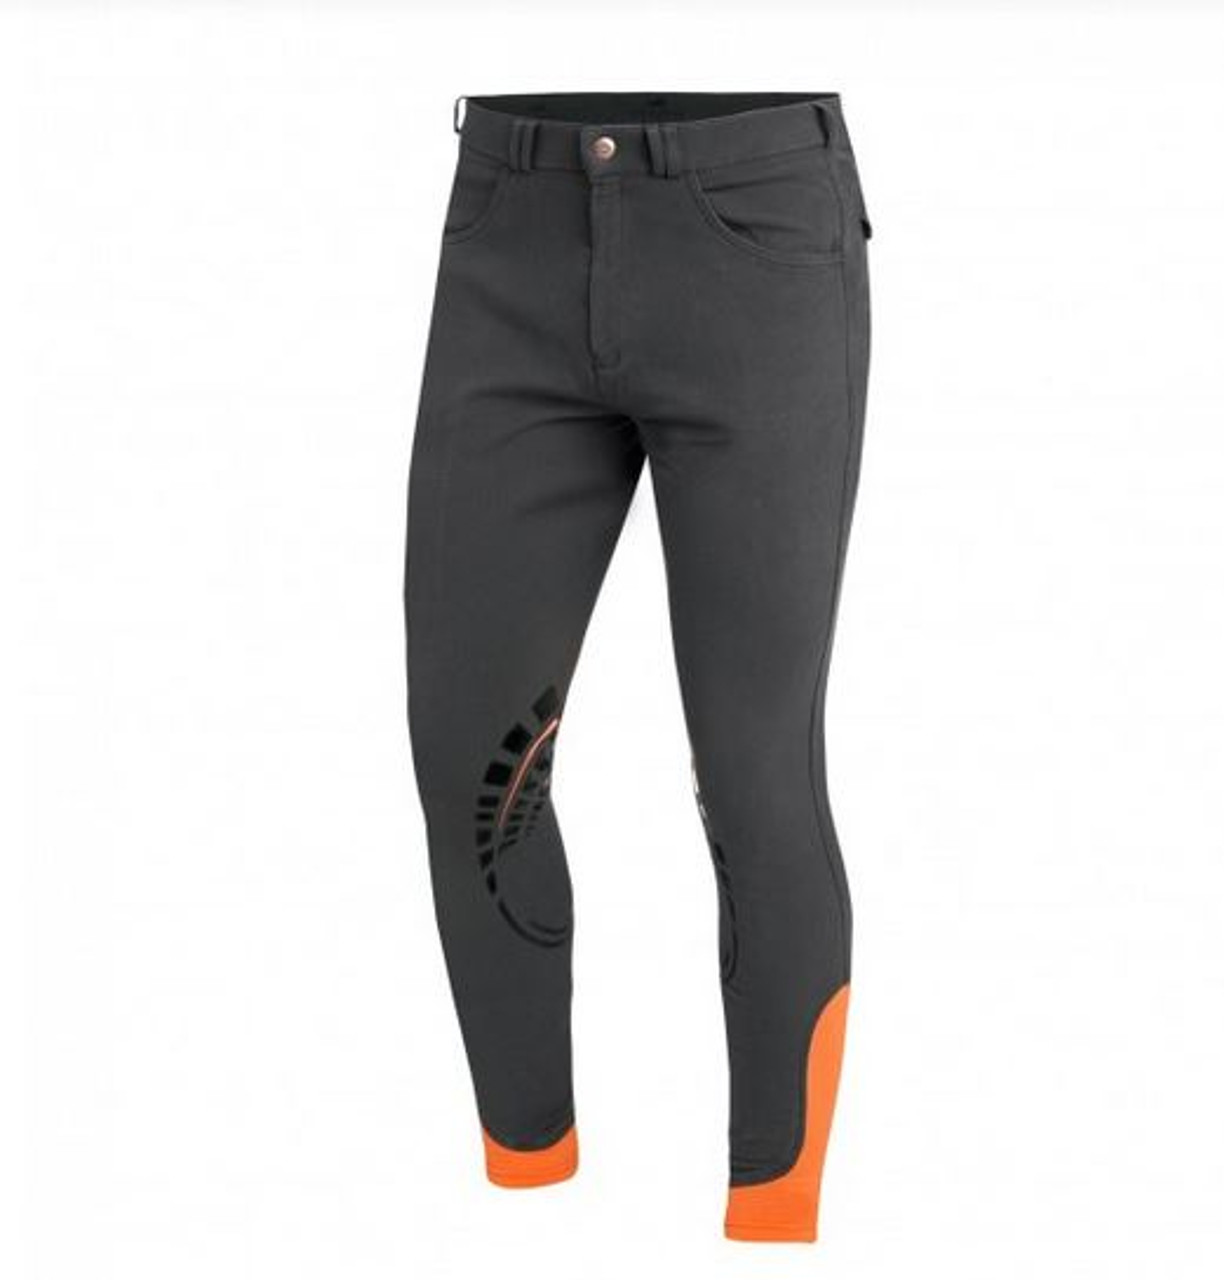 af48f0e91c027 Schockemohle Draco Knee Patch Breeches for Men grey/orange front